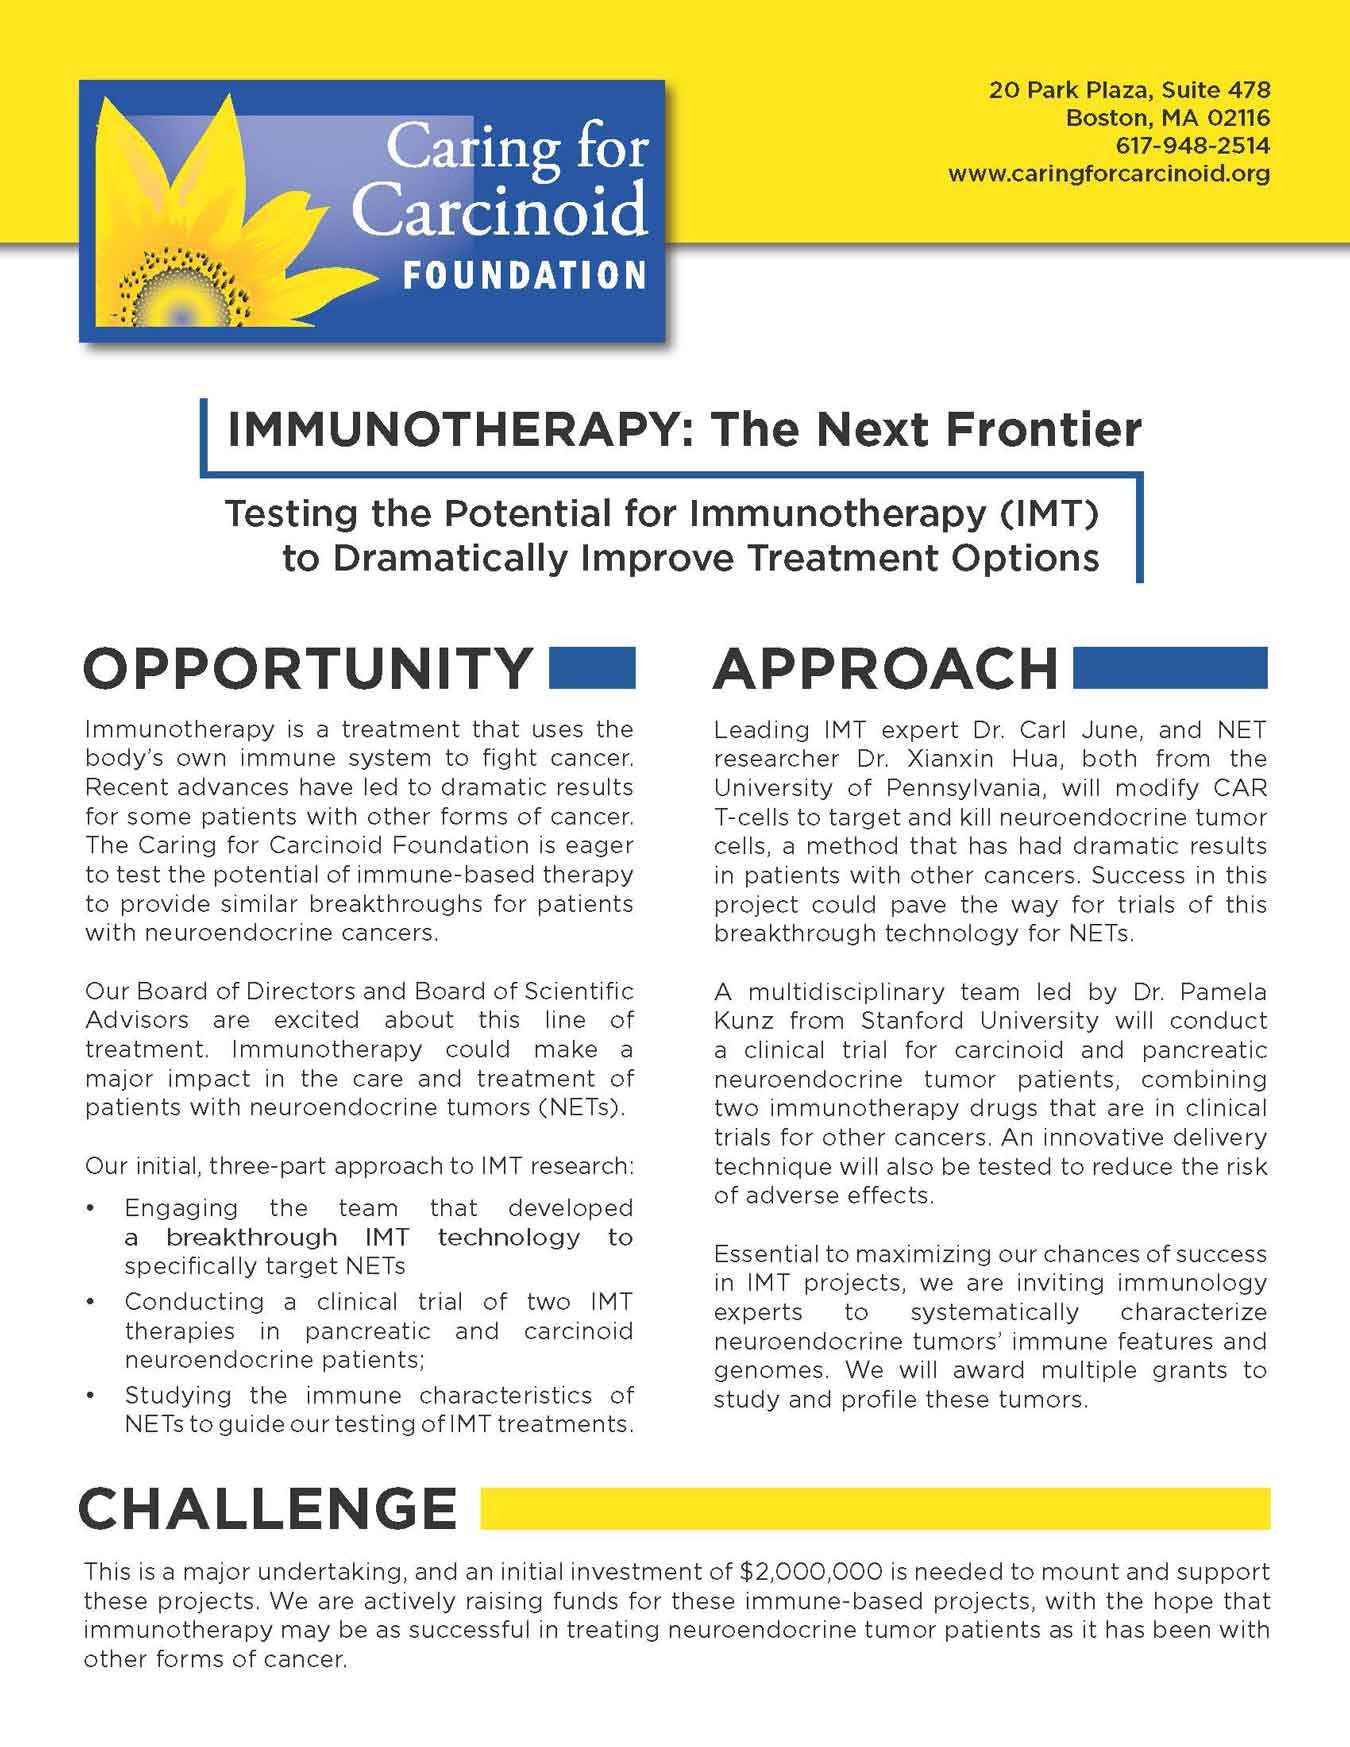 neuroendocrine cancer and immunotherapy